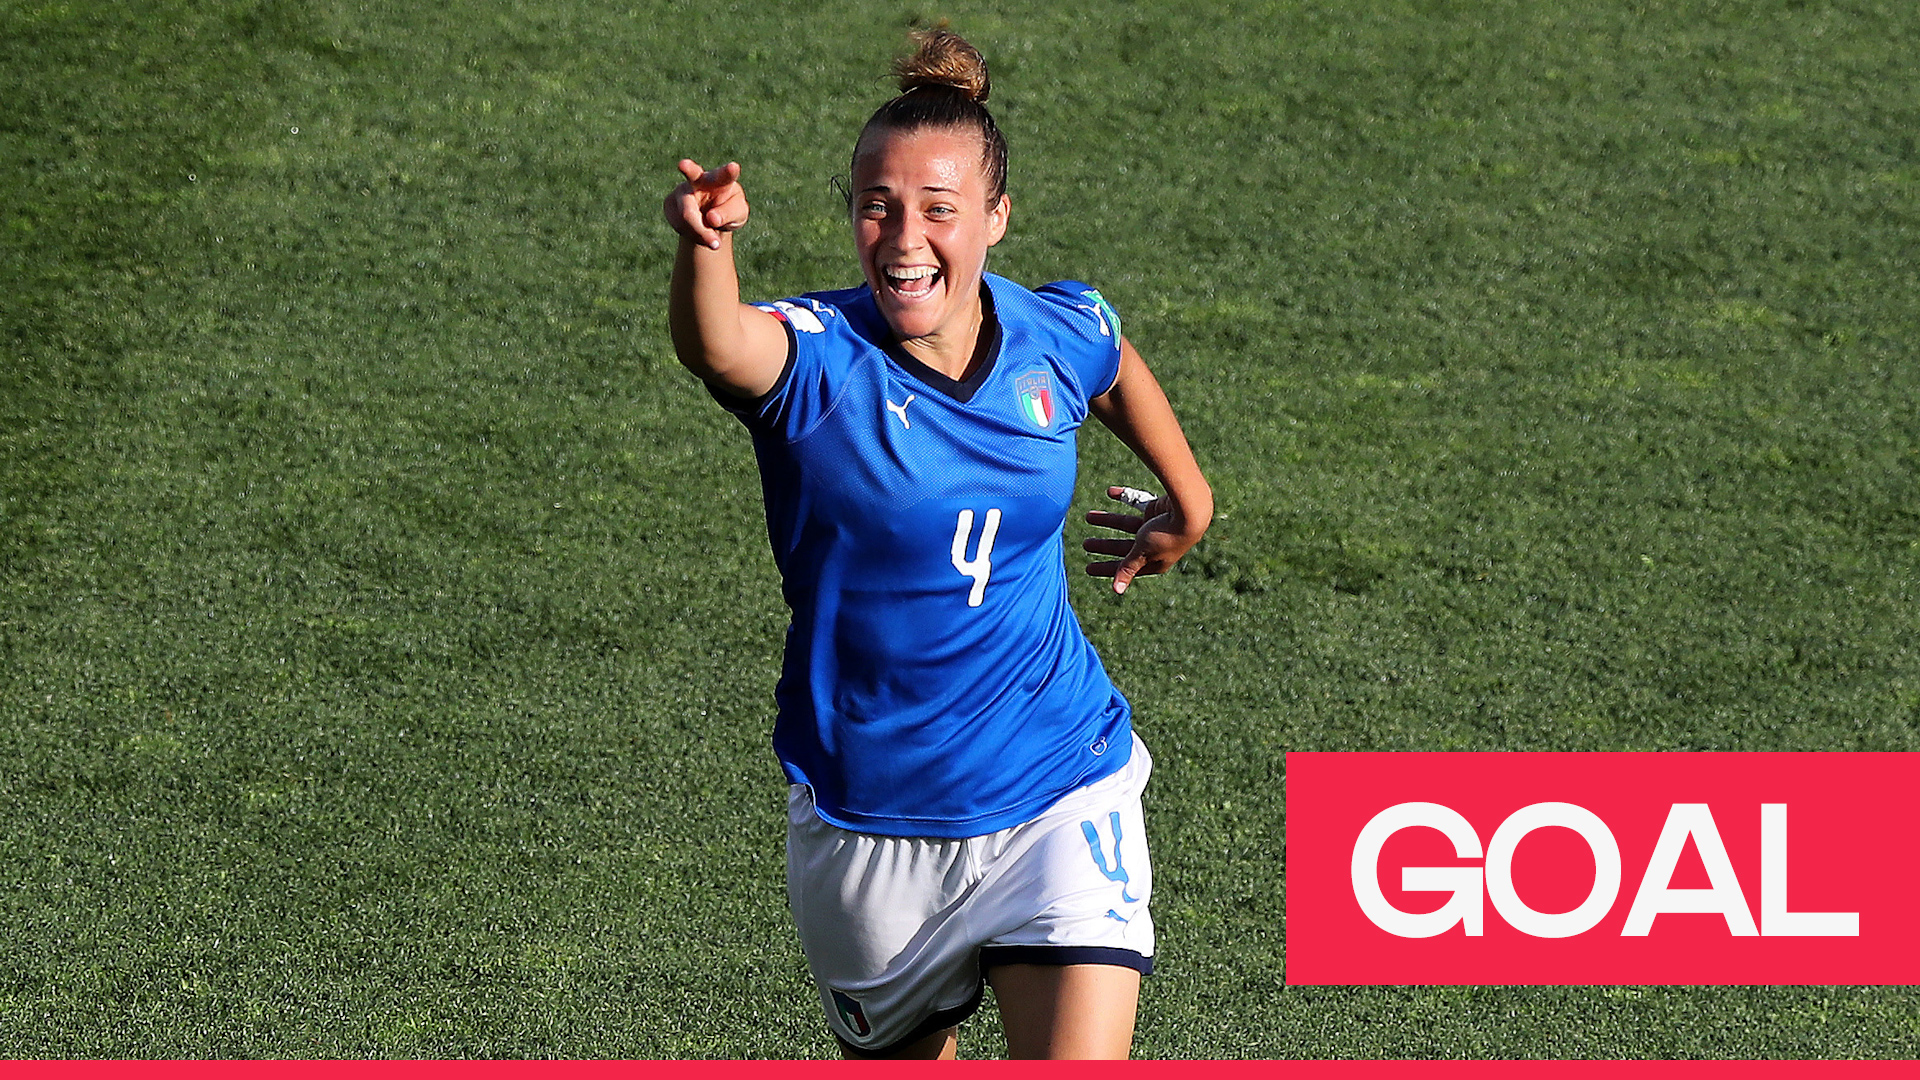 Women's World Cup 2019: Aurora Galli scores Italy's second with a powerful effort from outside the box